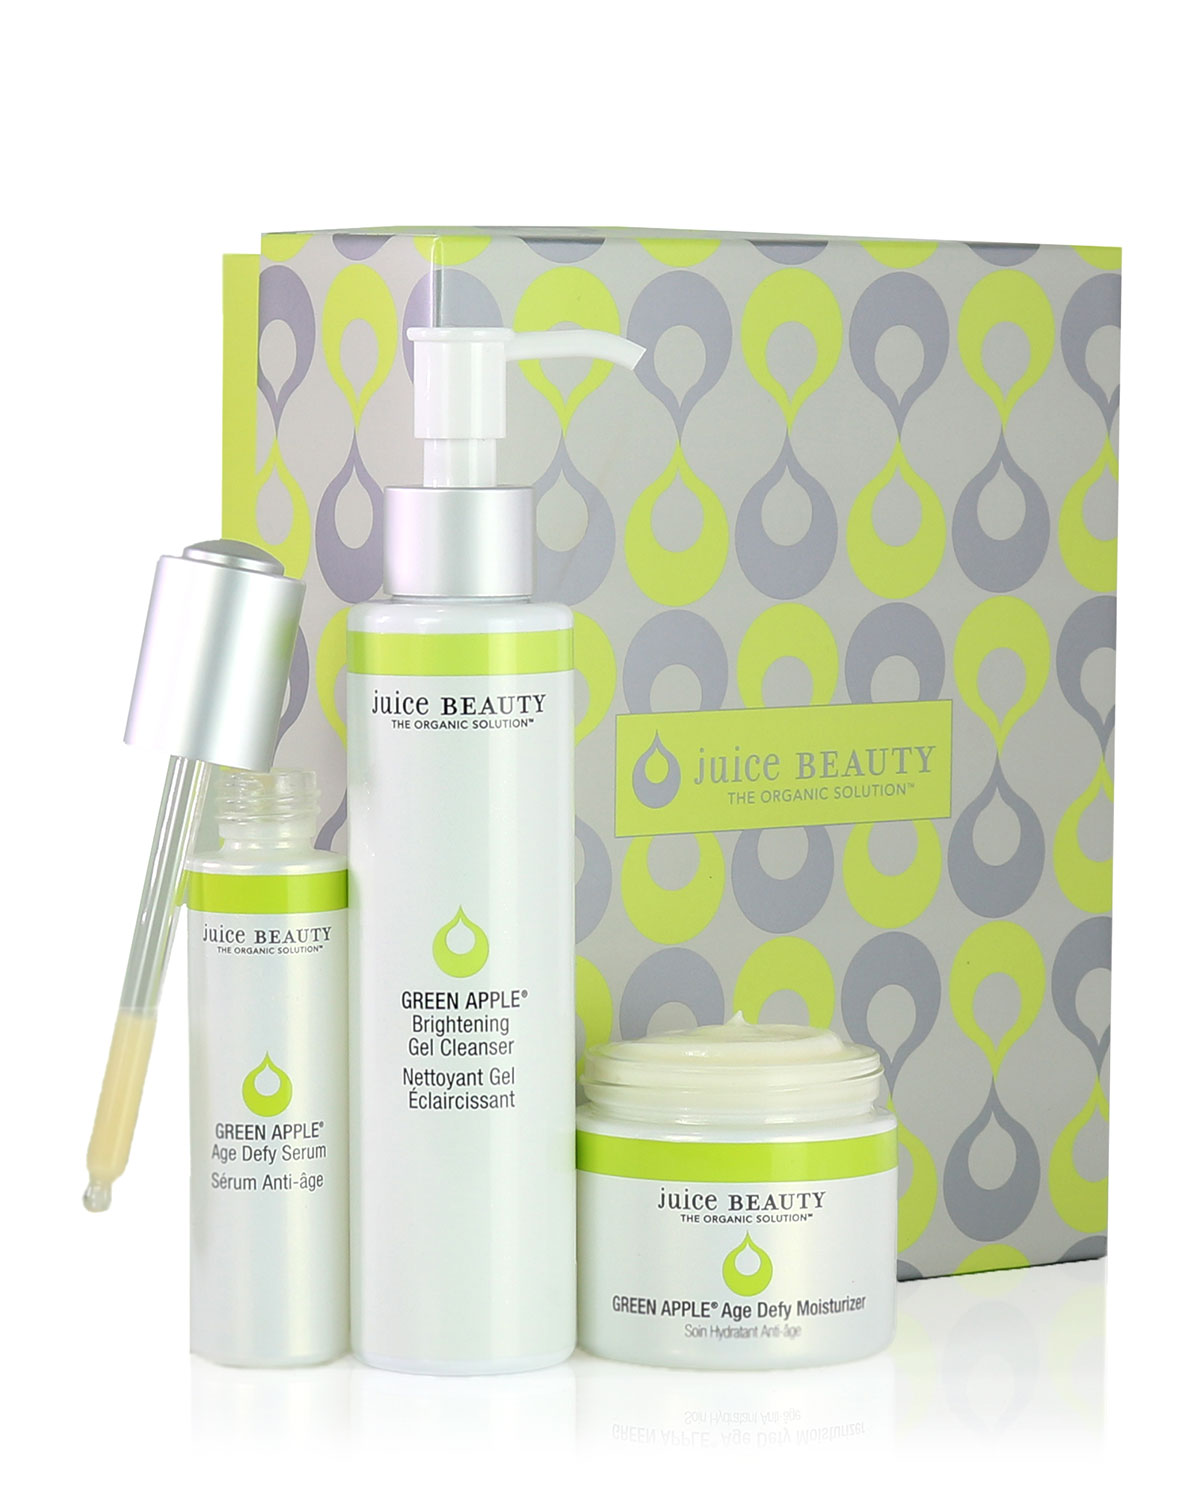 Juice Beauty LIMITED EDITION BEST OF GREEN APPLE® SET ($129.00 VALUE)